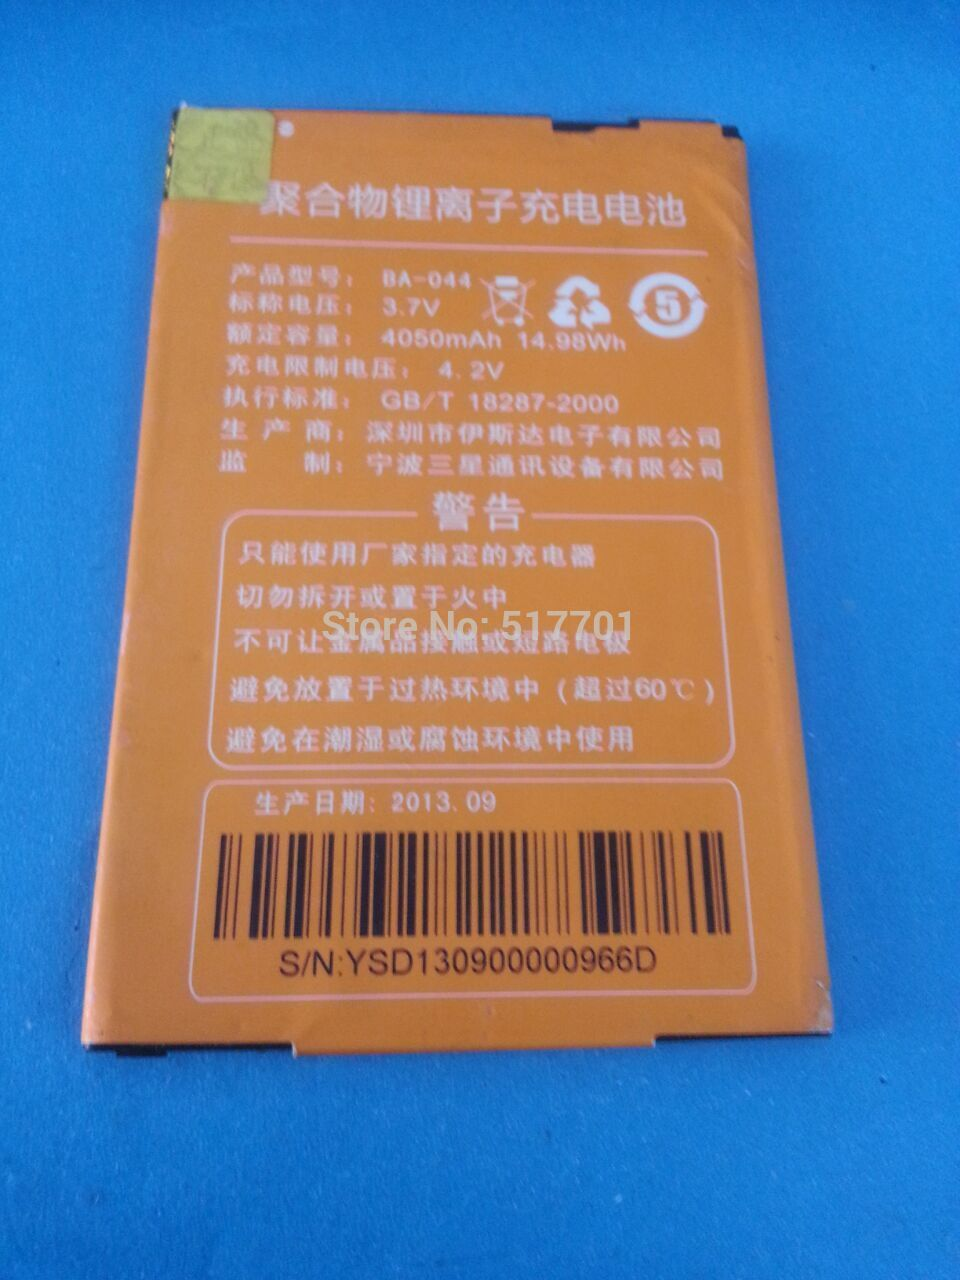 Free shipping high quality mobile phone battery BA-044 for AUX W1 S7 with good quality and best price